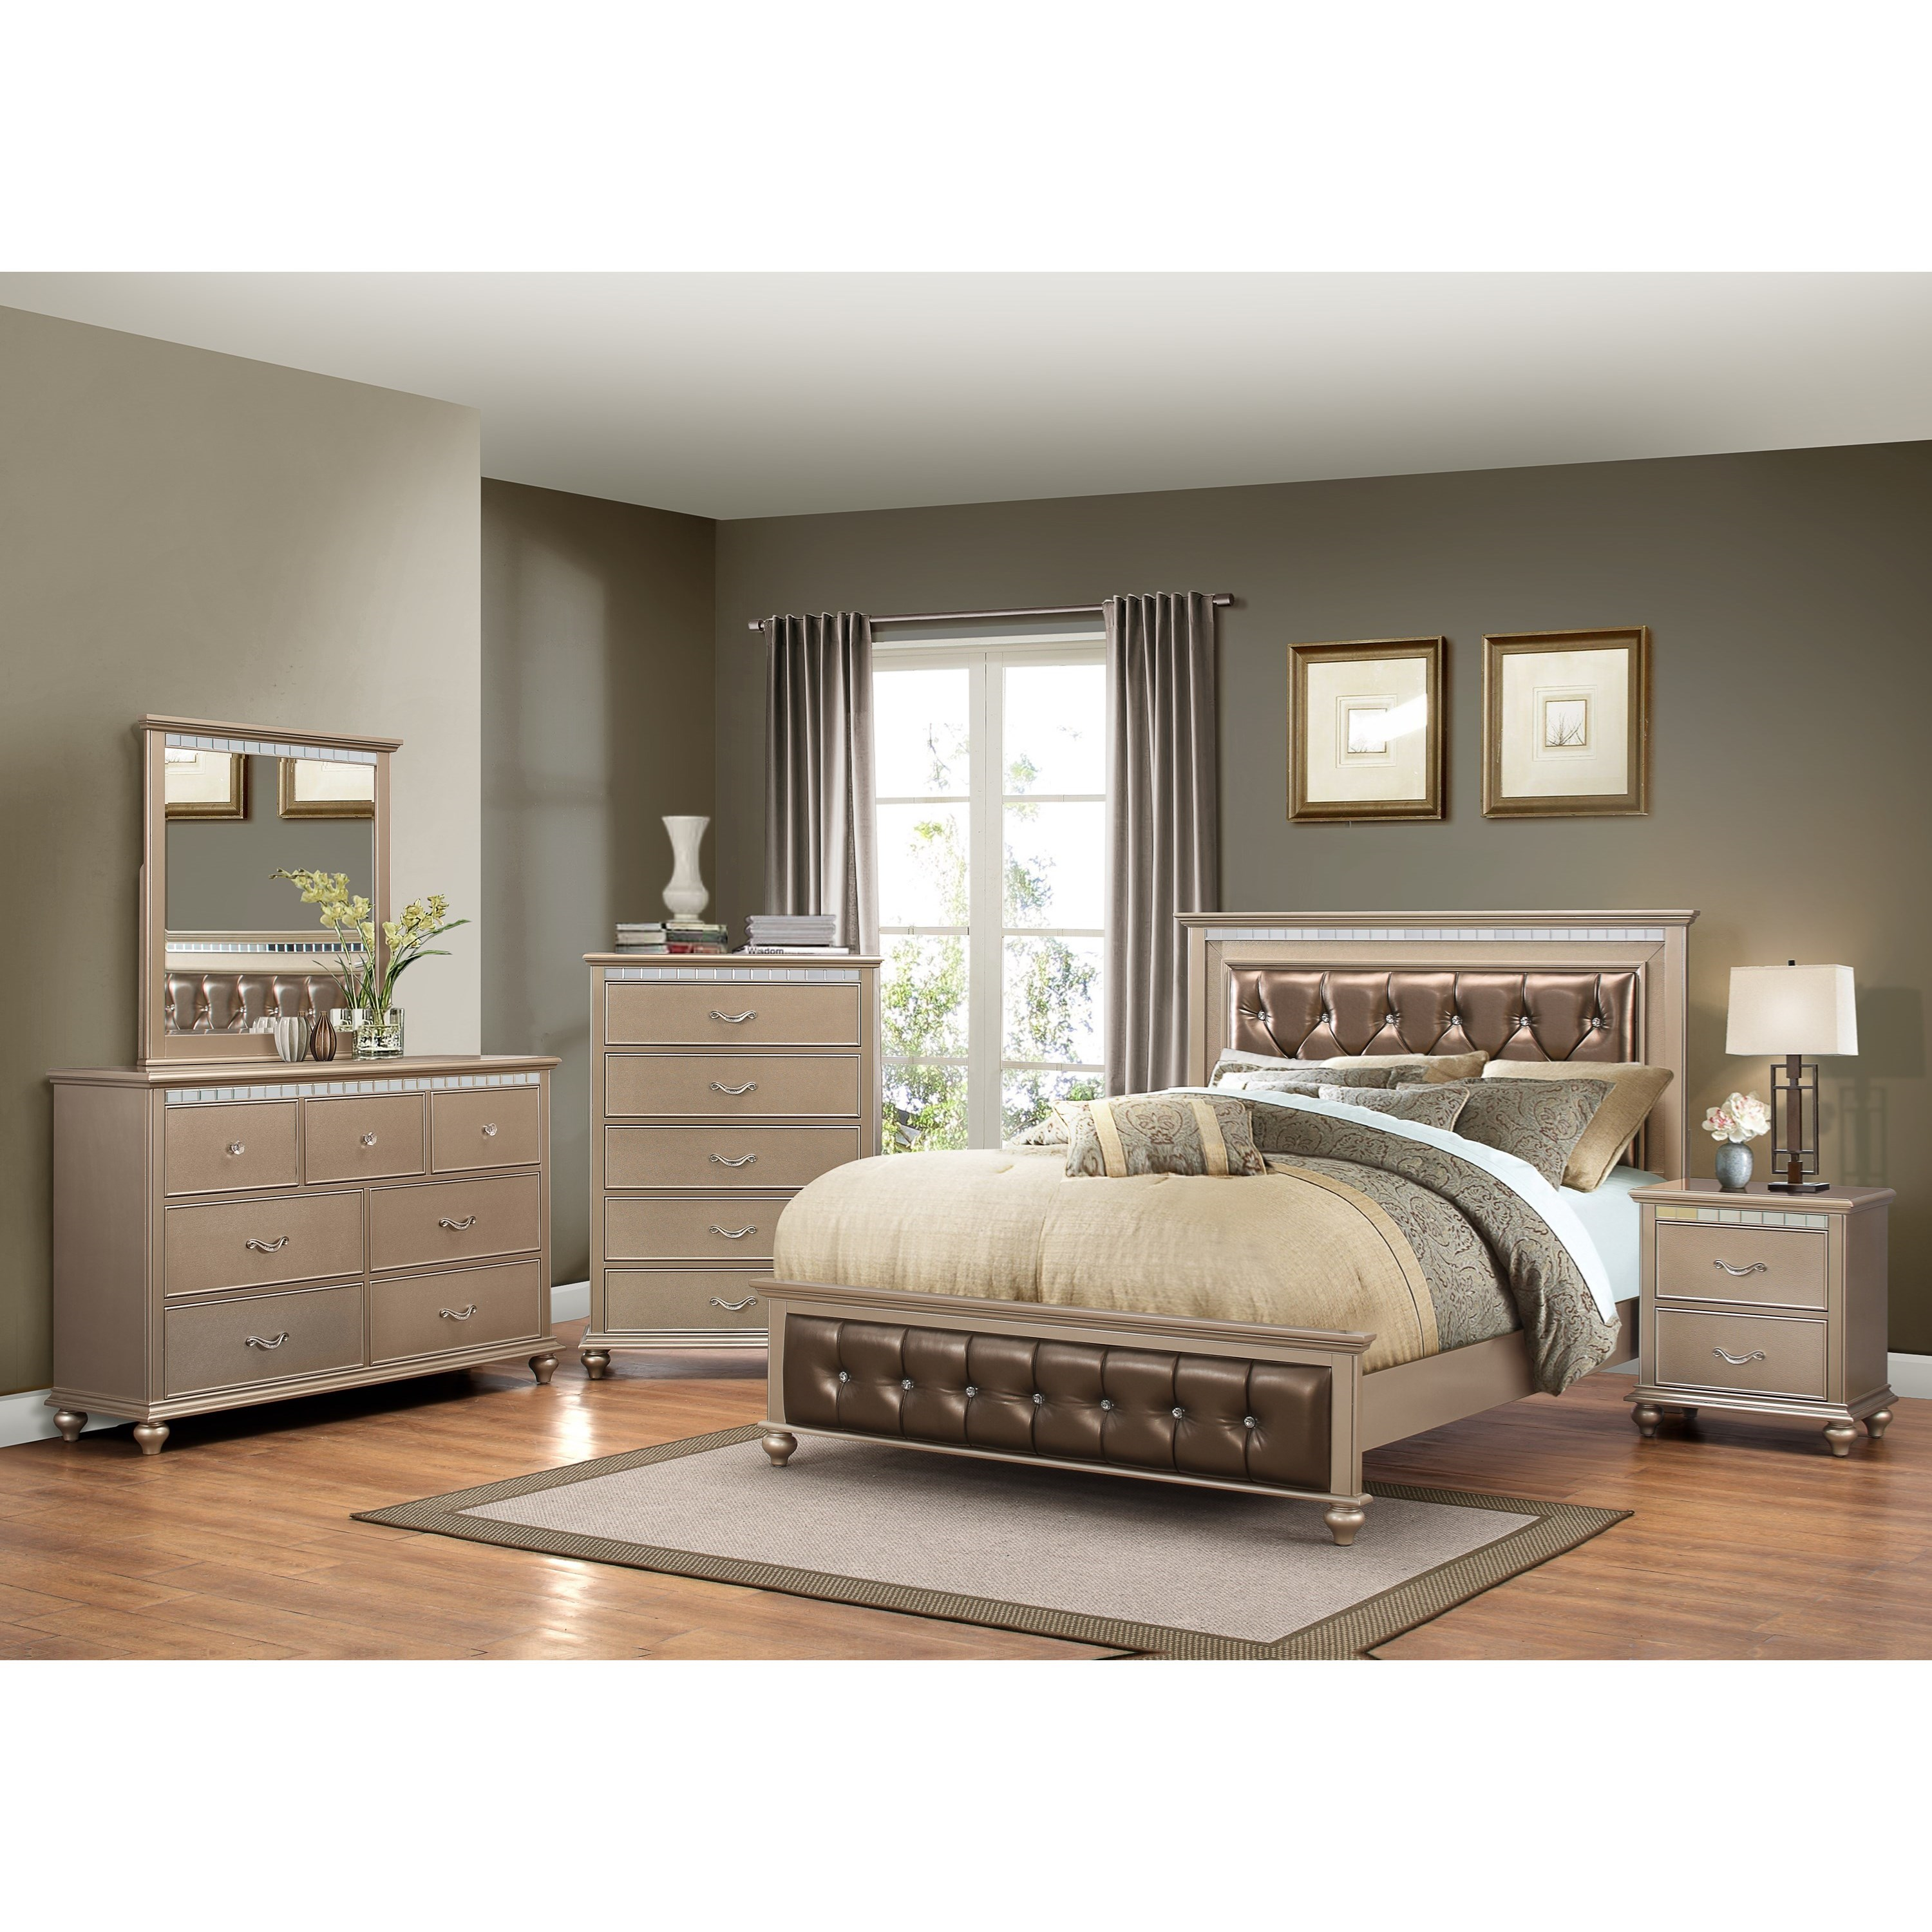 Hollywood 1008 Queen Bedroom Group by United Furniture Industries at Dream Home Interiors